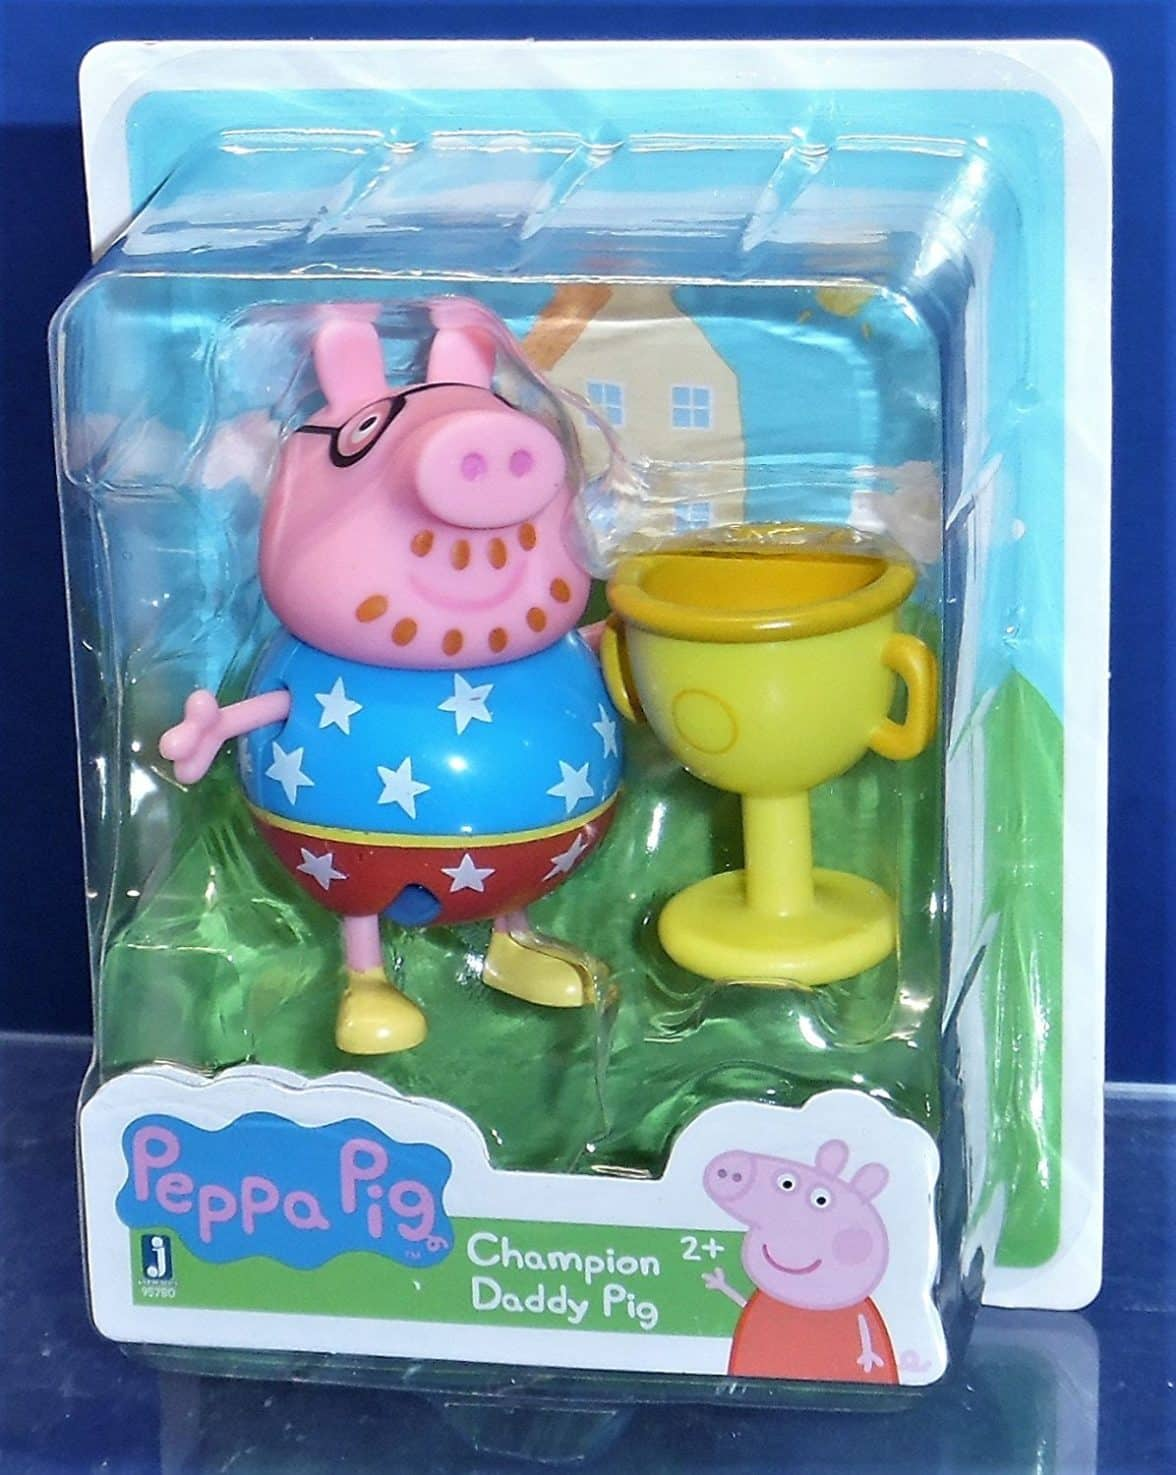 World of Peppa Pig Champion Daddy Pig & Trophy